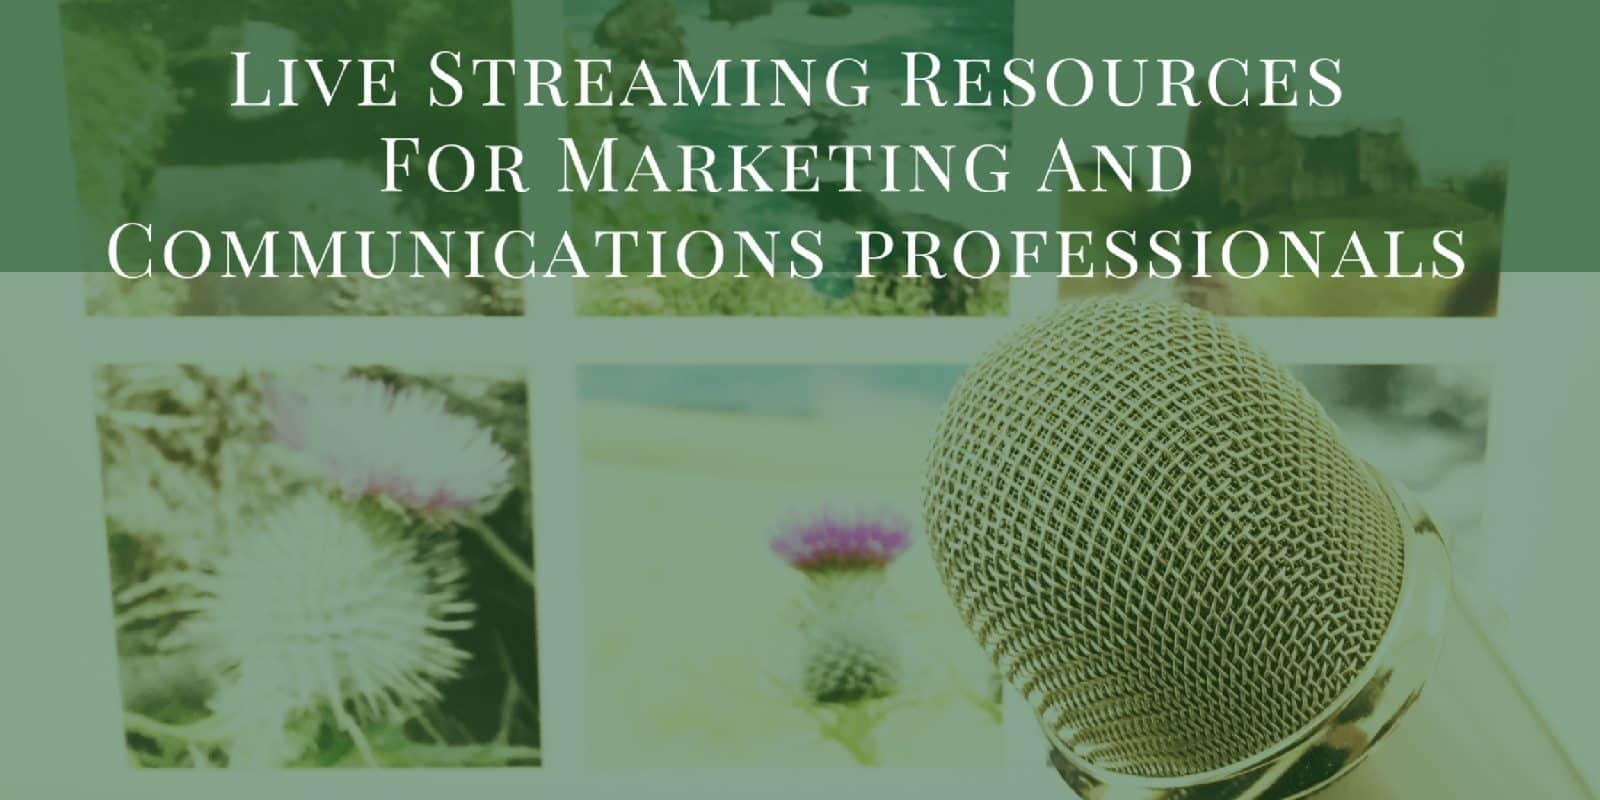 Live Stream Resources For Marketing And Communications Professionals